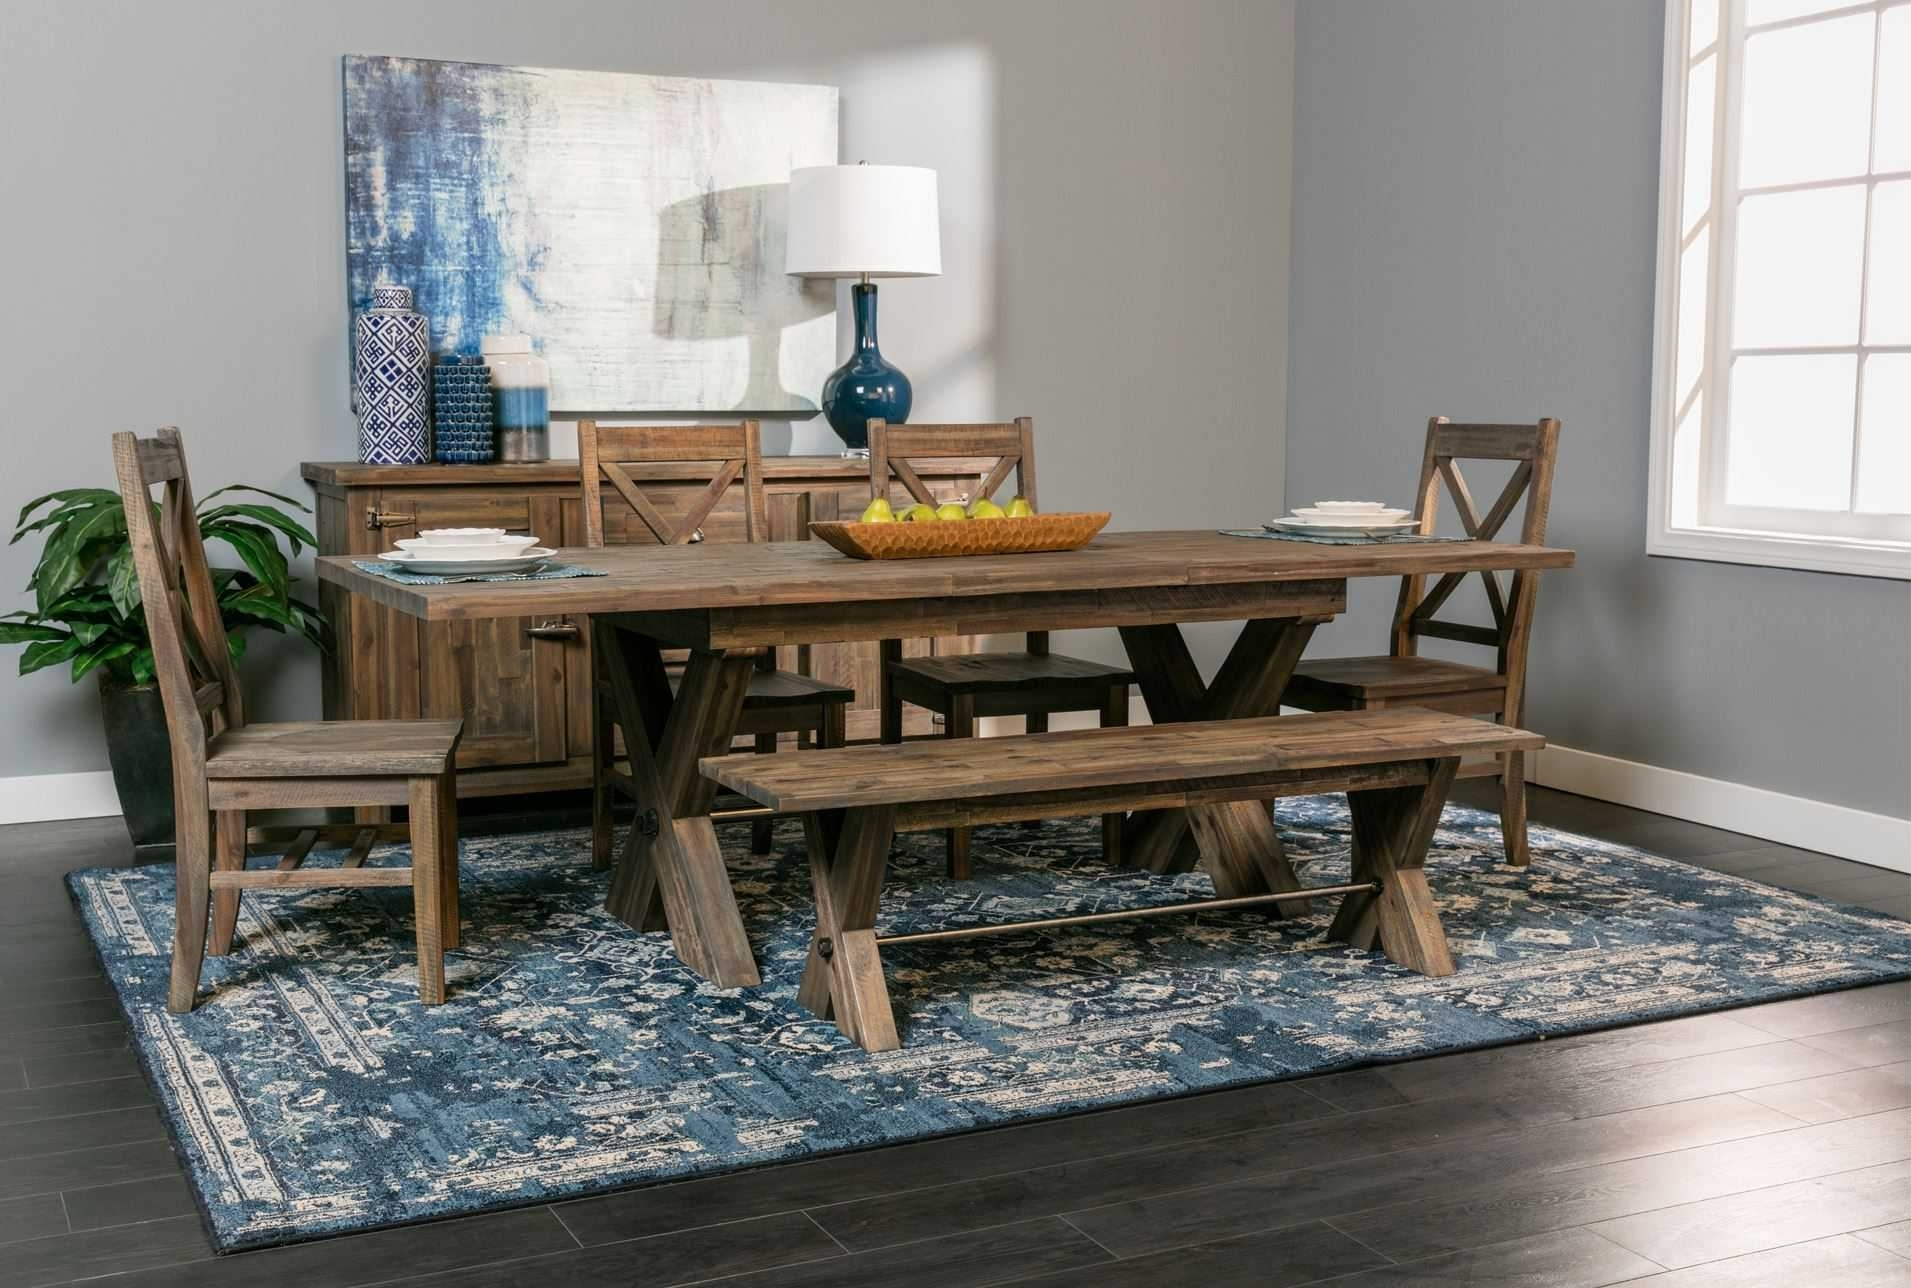 Likeable Living Spaces Dining Room Tables Of S #43937 | Forazhouse Throughout Latest Mallard 6 Piece Extension Dining Sets (Photo 7 of 20)